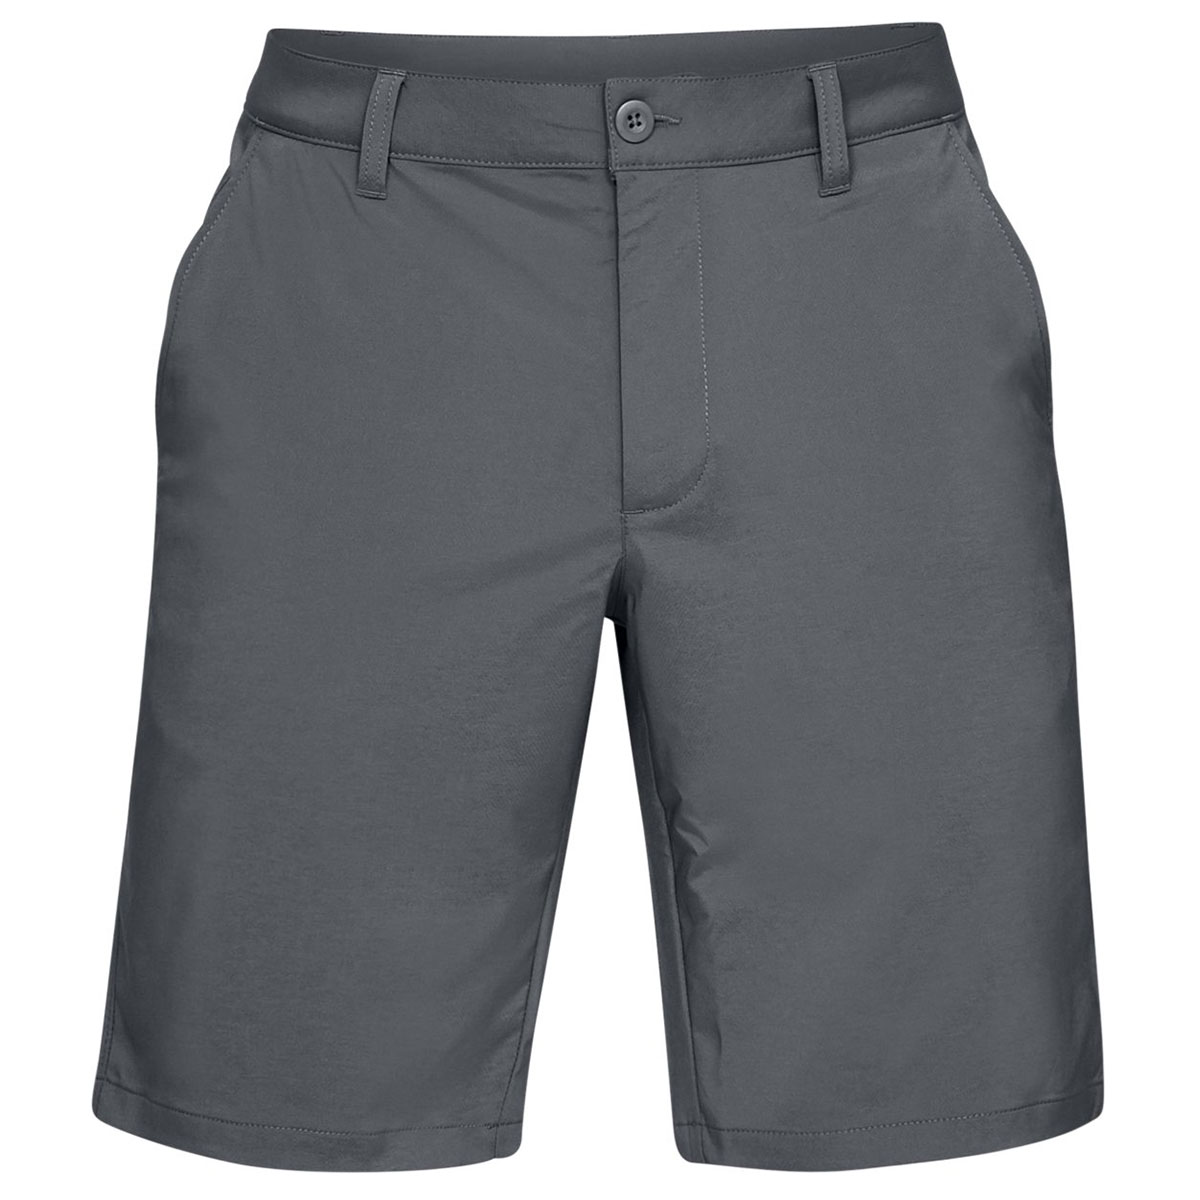 Under-Armour-Mens-EU-Tech-Stretch-Soft-Fitted-Golf-Shorts thumbnail 16